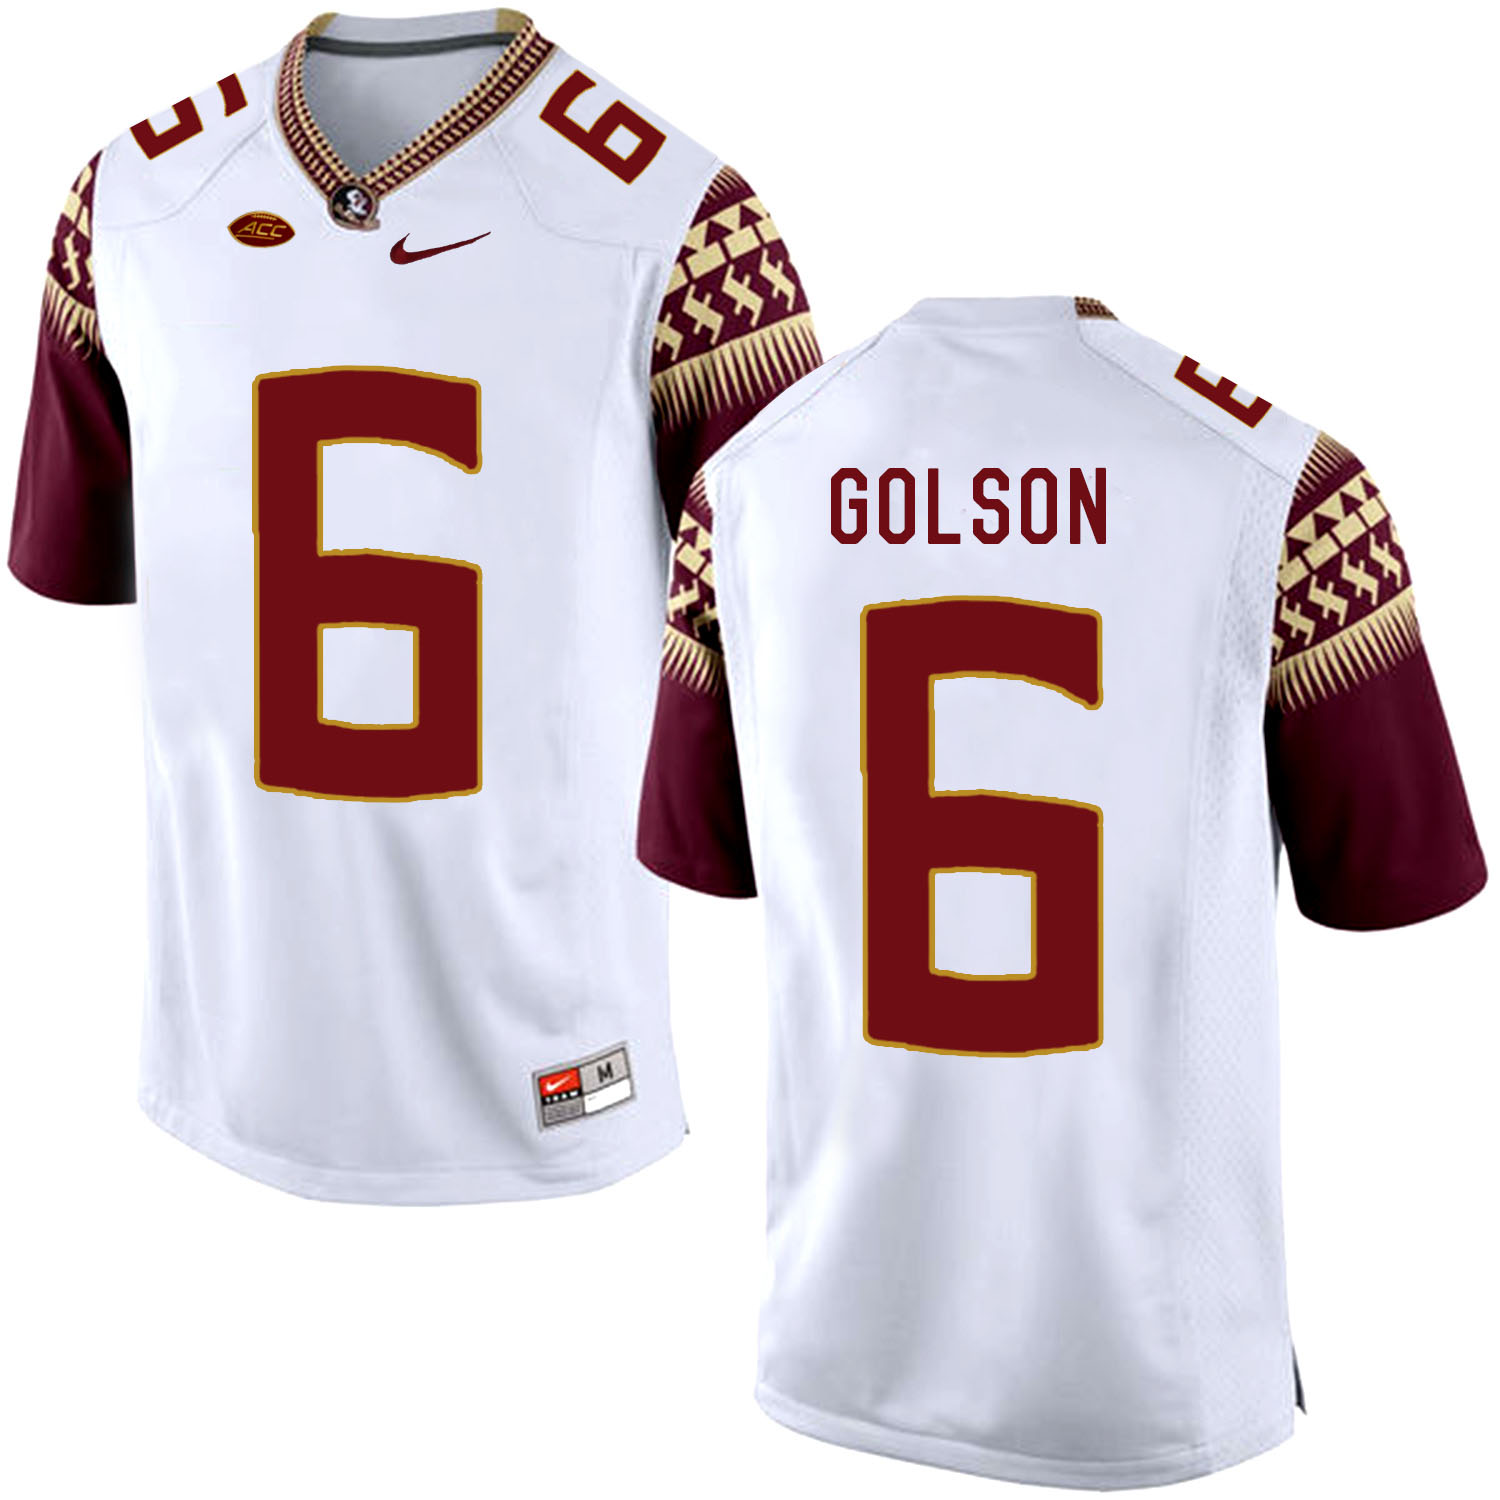 Florida State Seminoles 6 Everett Golson White College Football Jersey